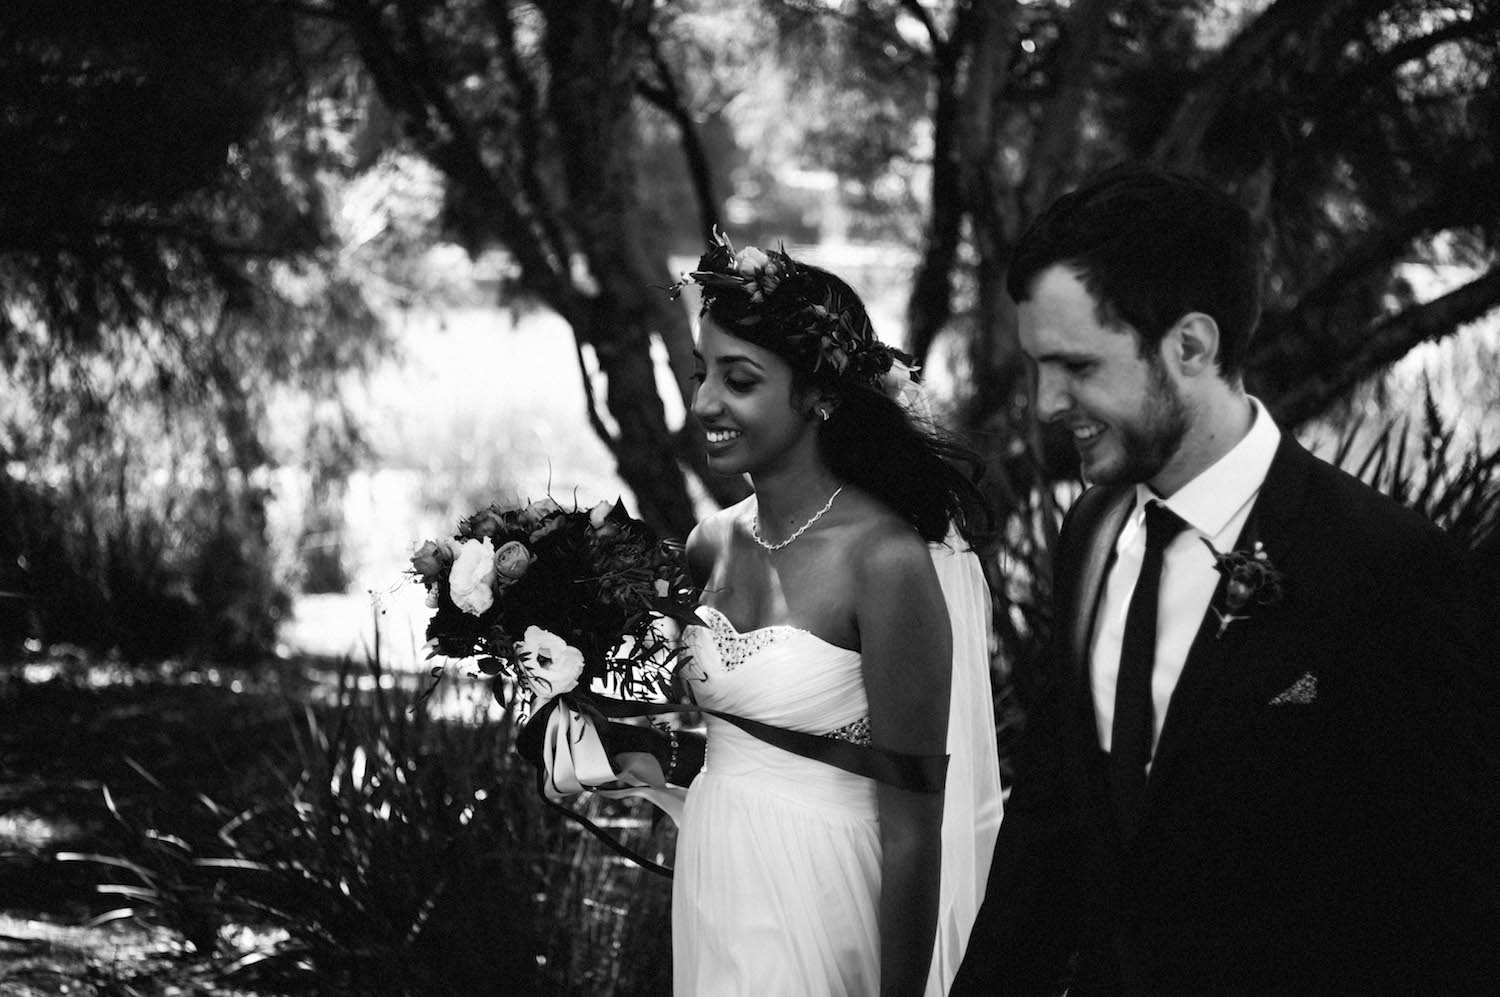 A black & white photo of Jibb & Tripthi celebrating their wedding together at Shenton Park.